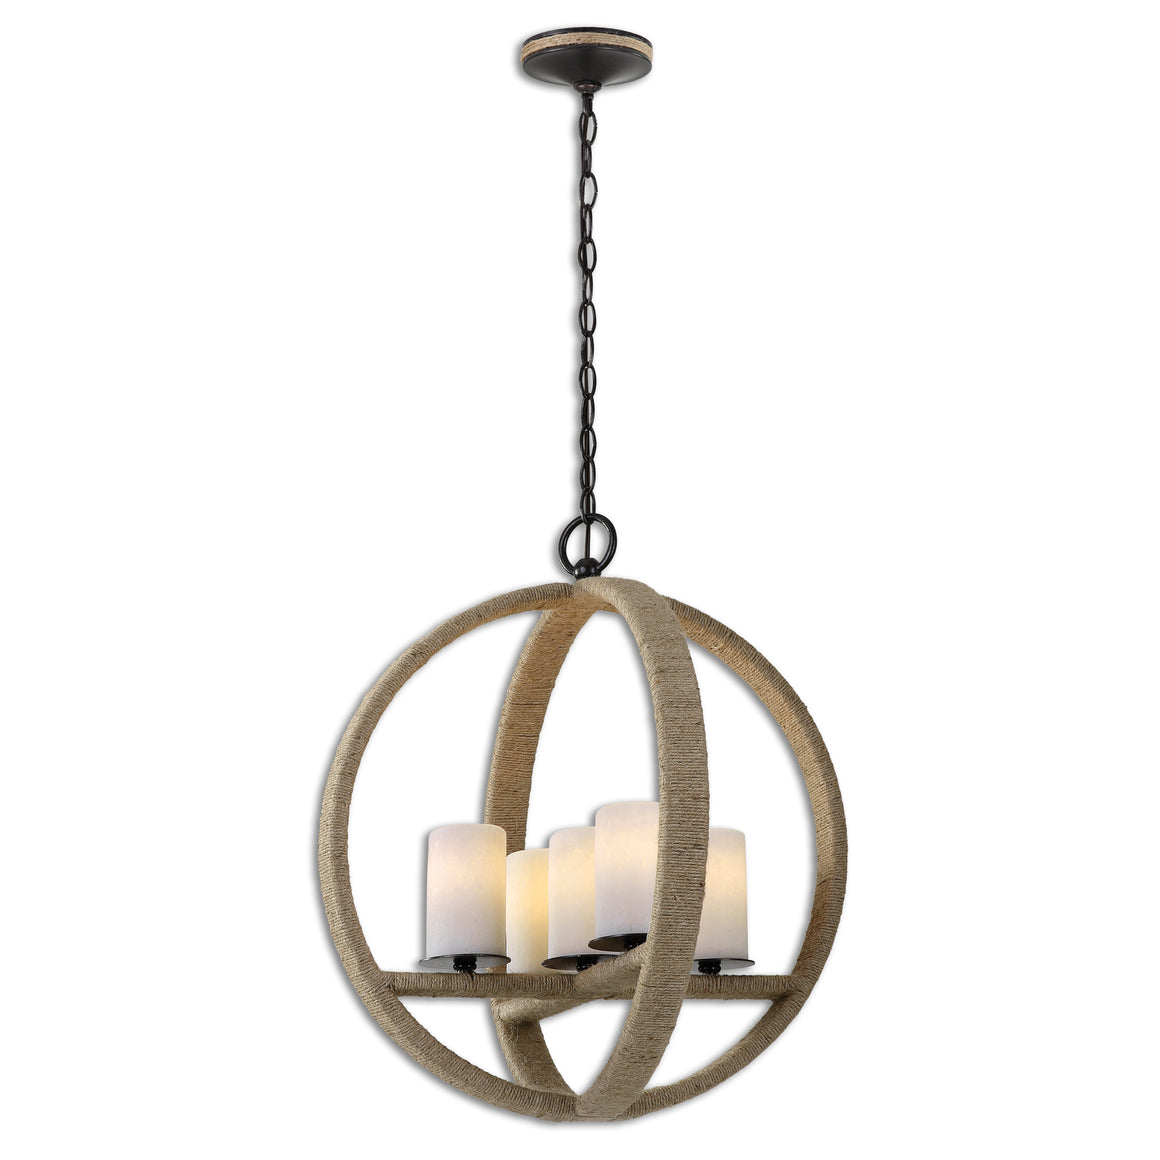 Gironico Round 5 Light Pendant